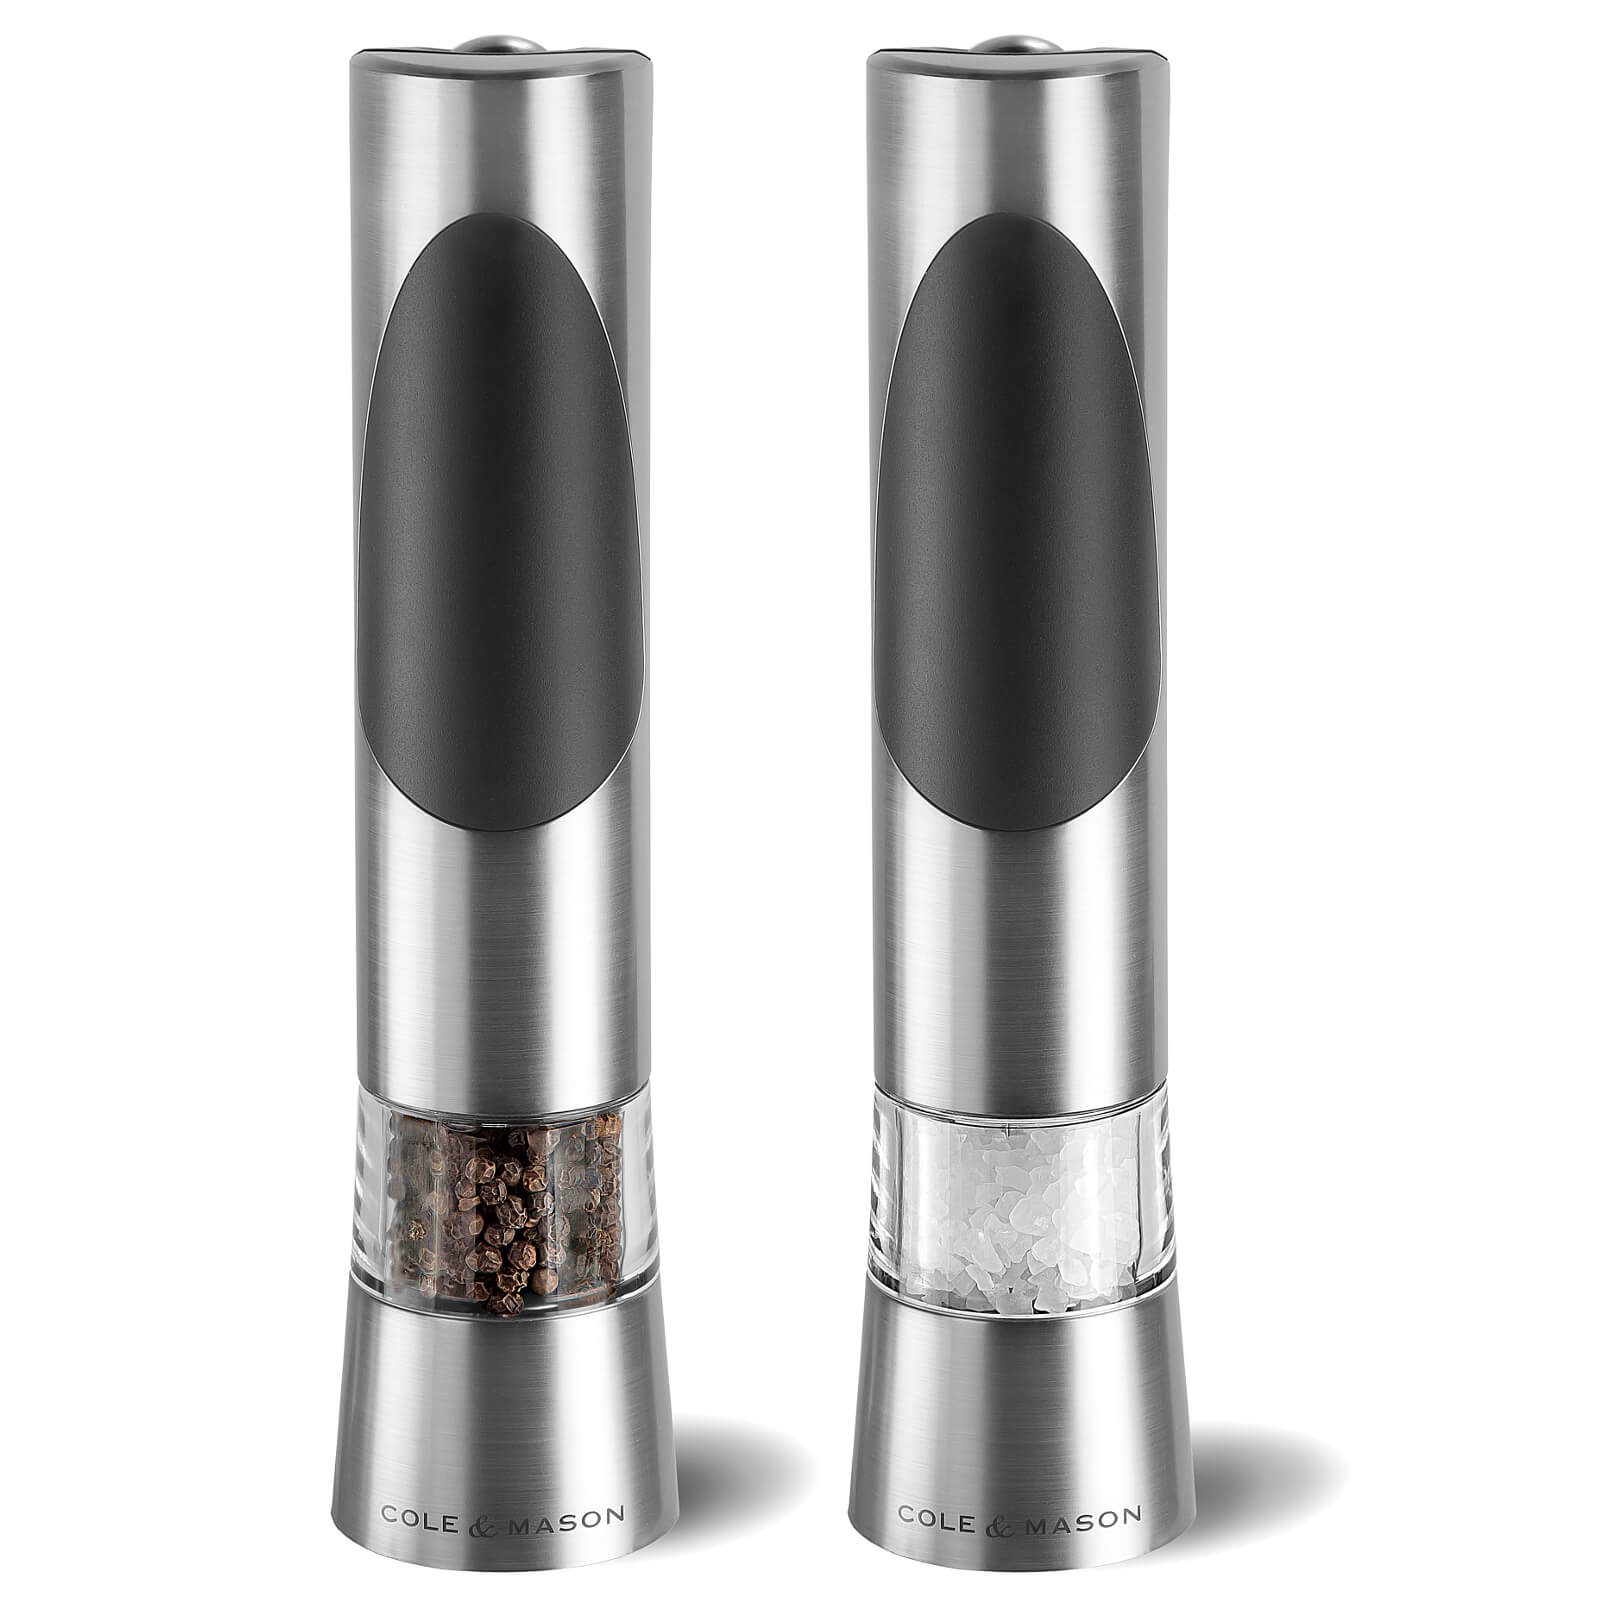 Cole & Mason Richmond Electronic Salt and Pepper Mill Gift Set